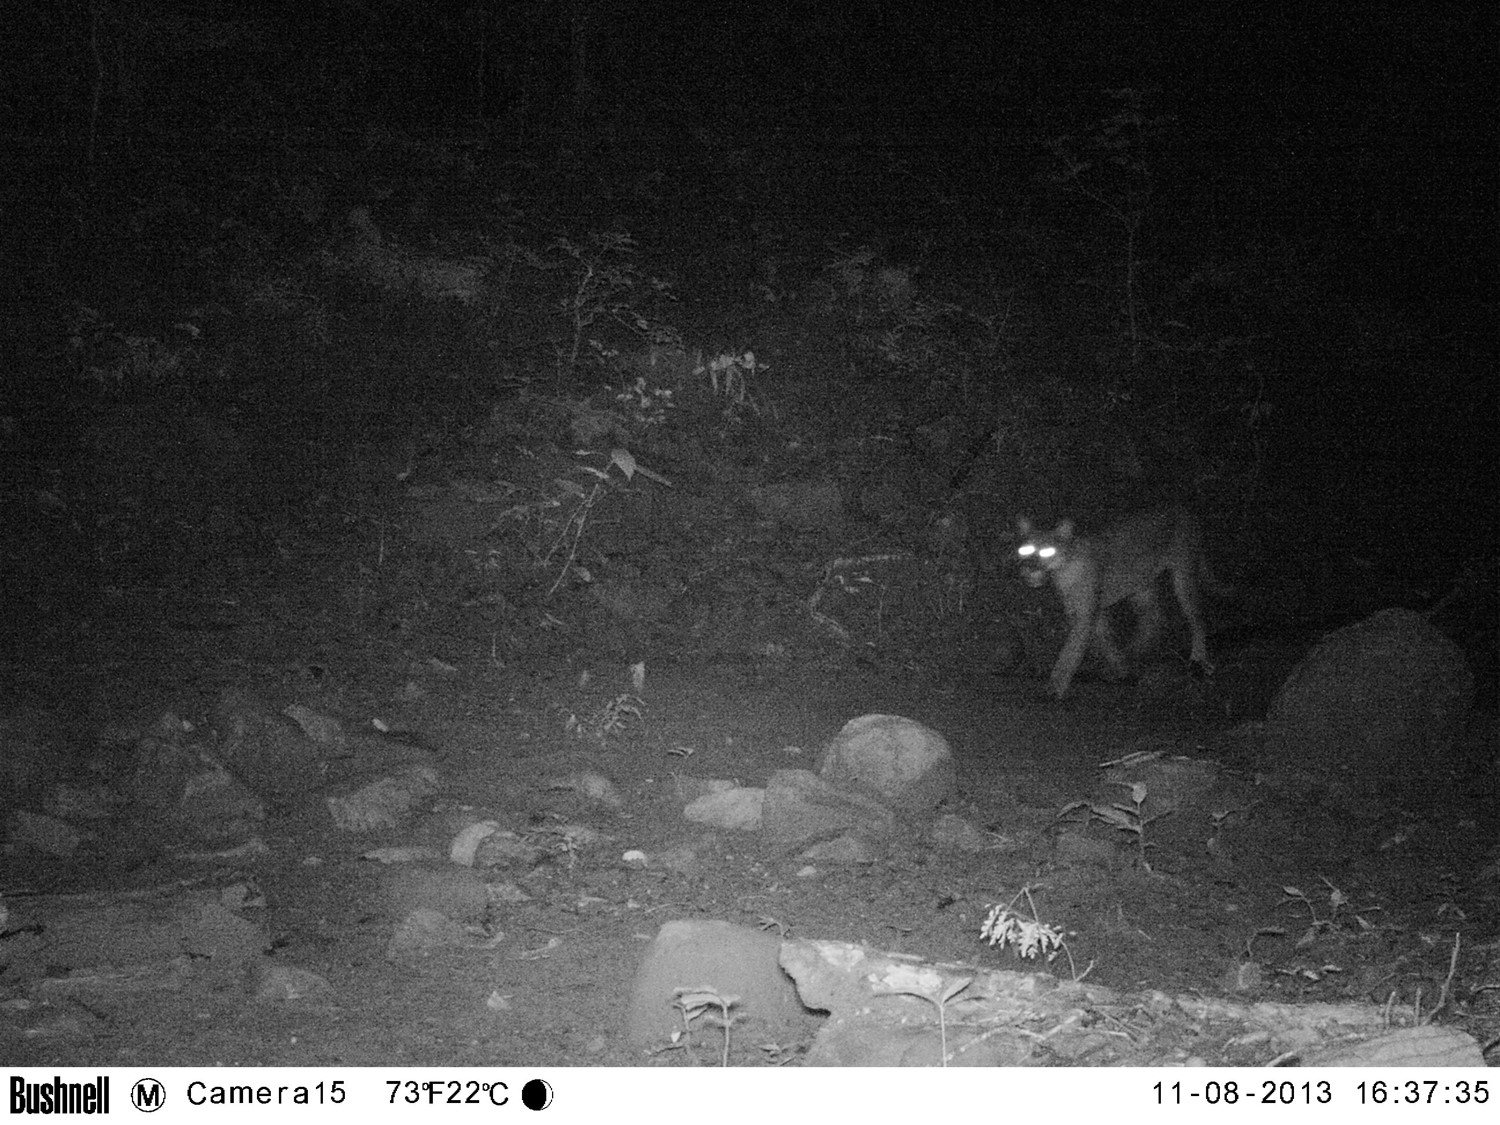 These photos were taken less than a week after we installed our camera traps, which provided a very positive start to our study.